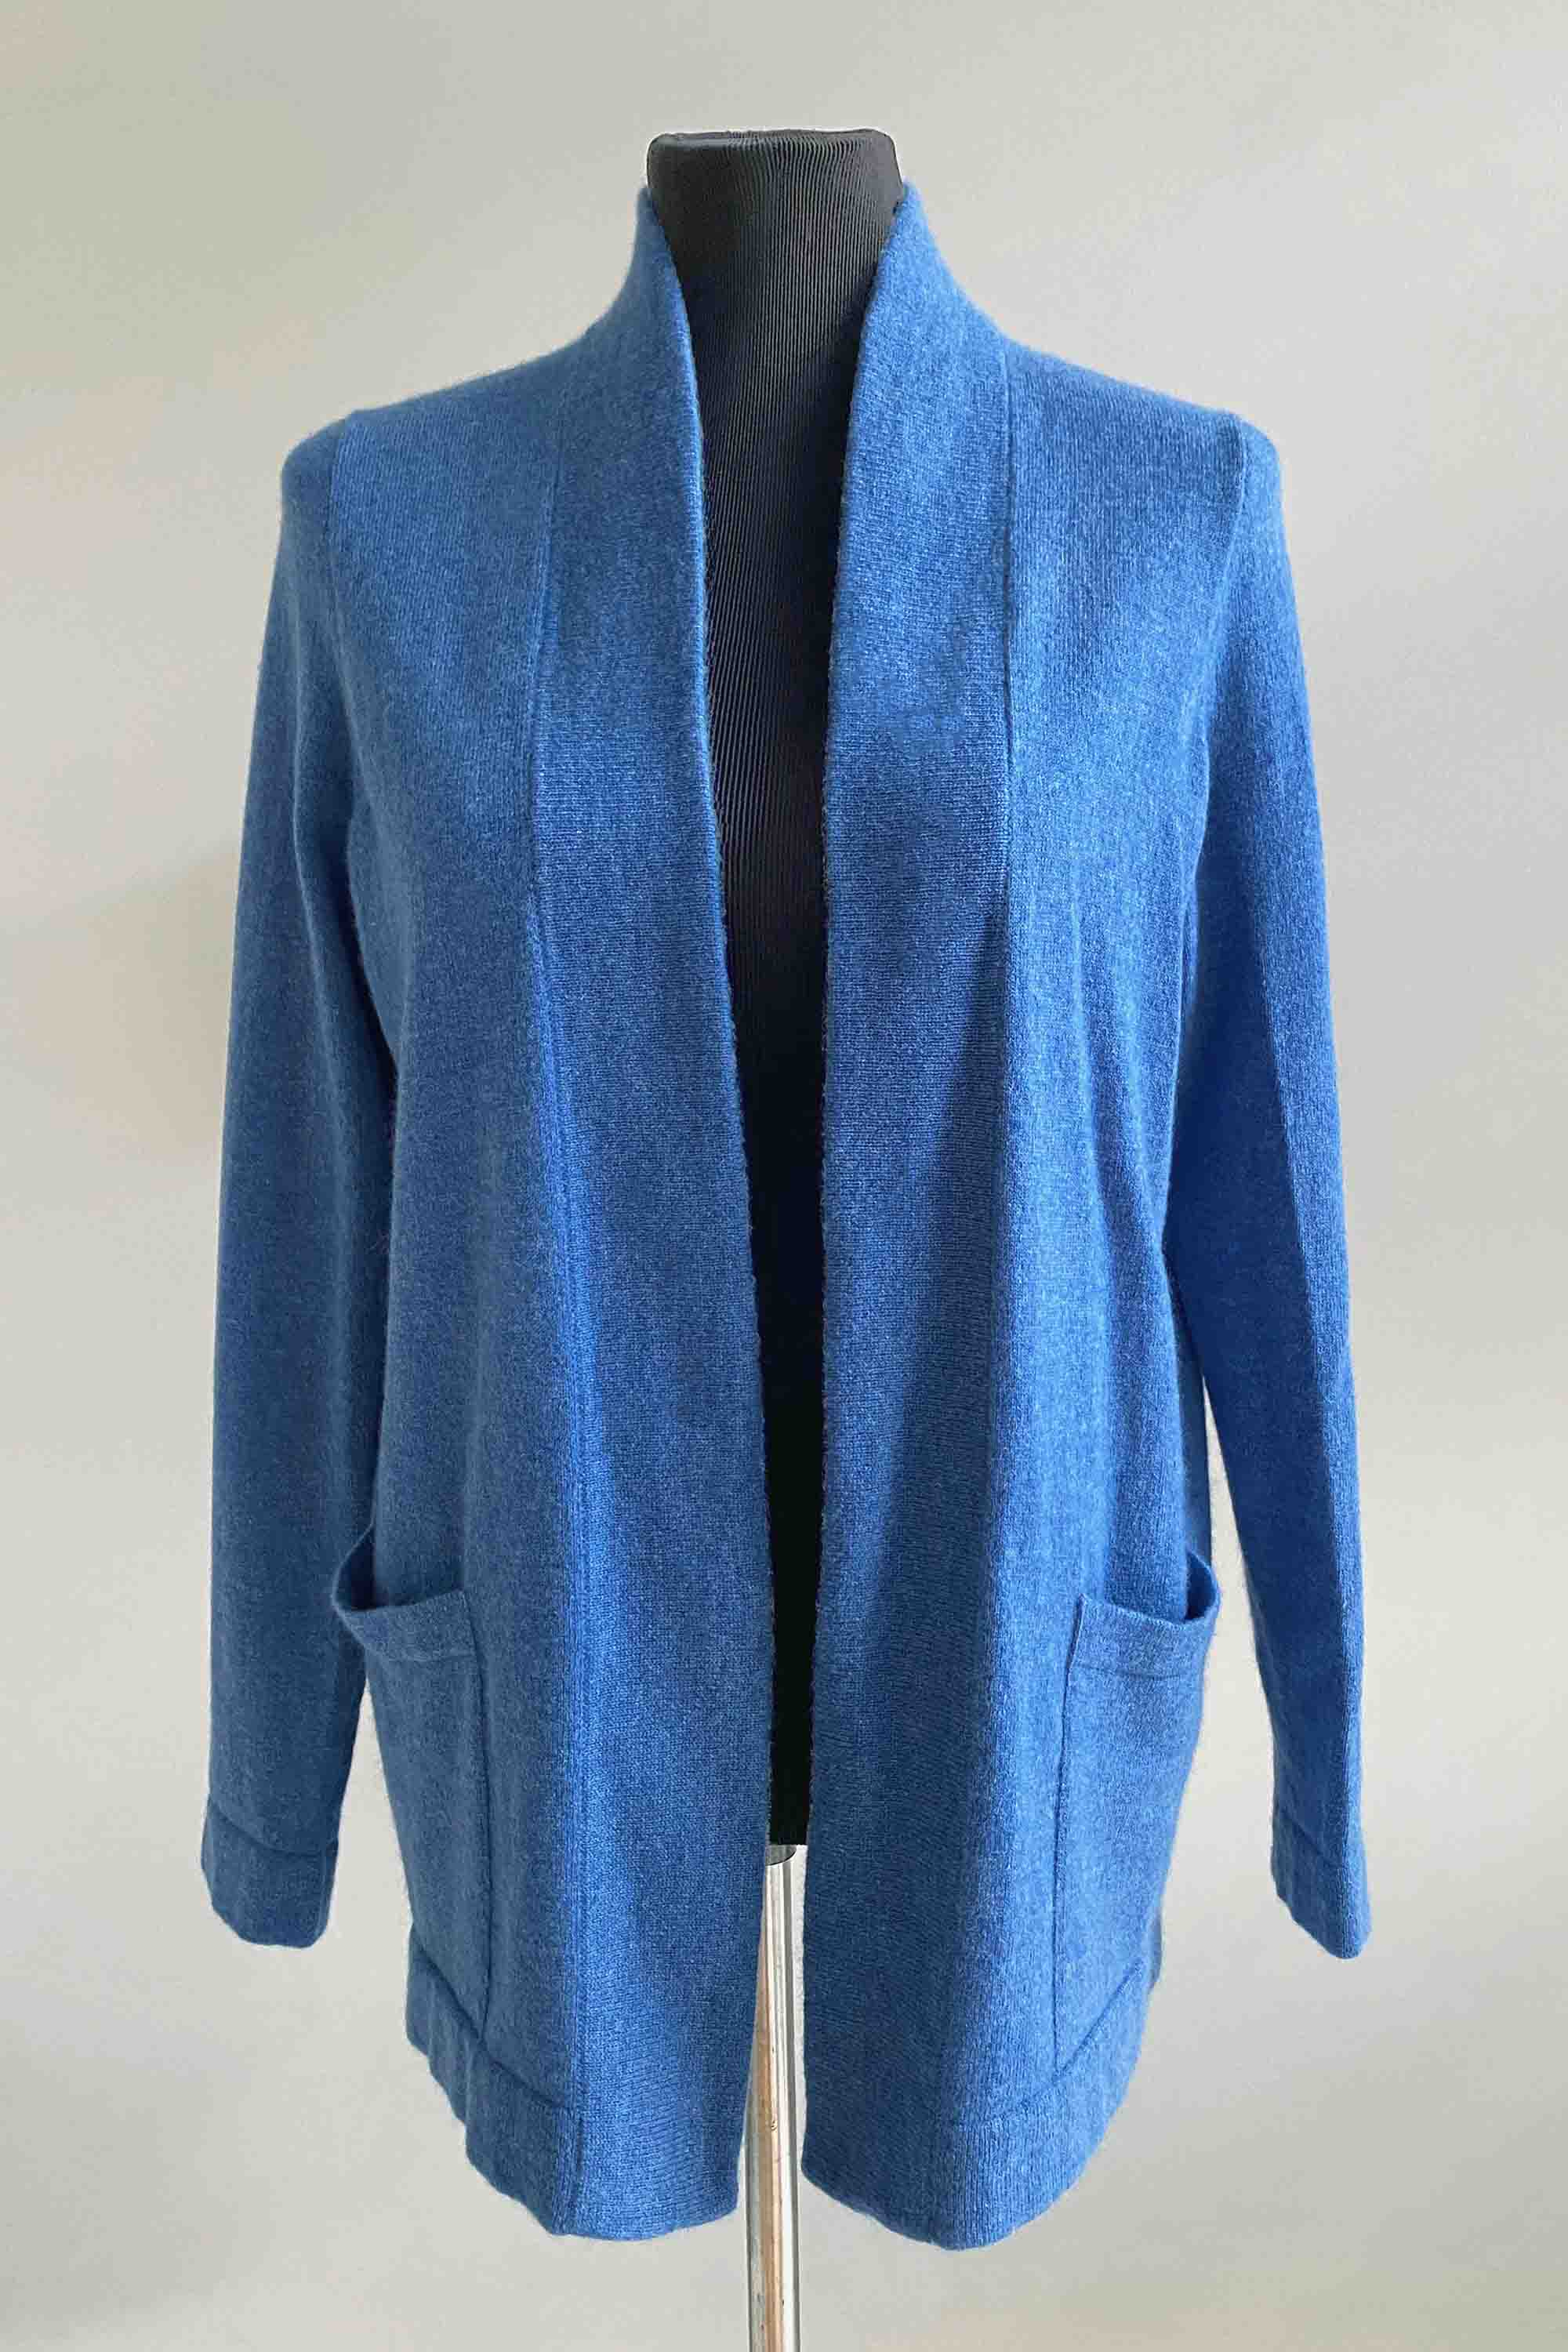 Boxy cashmere cardigan with pockets in blue